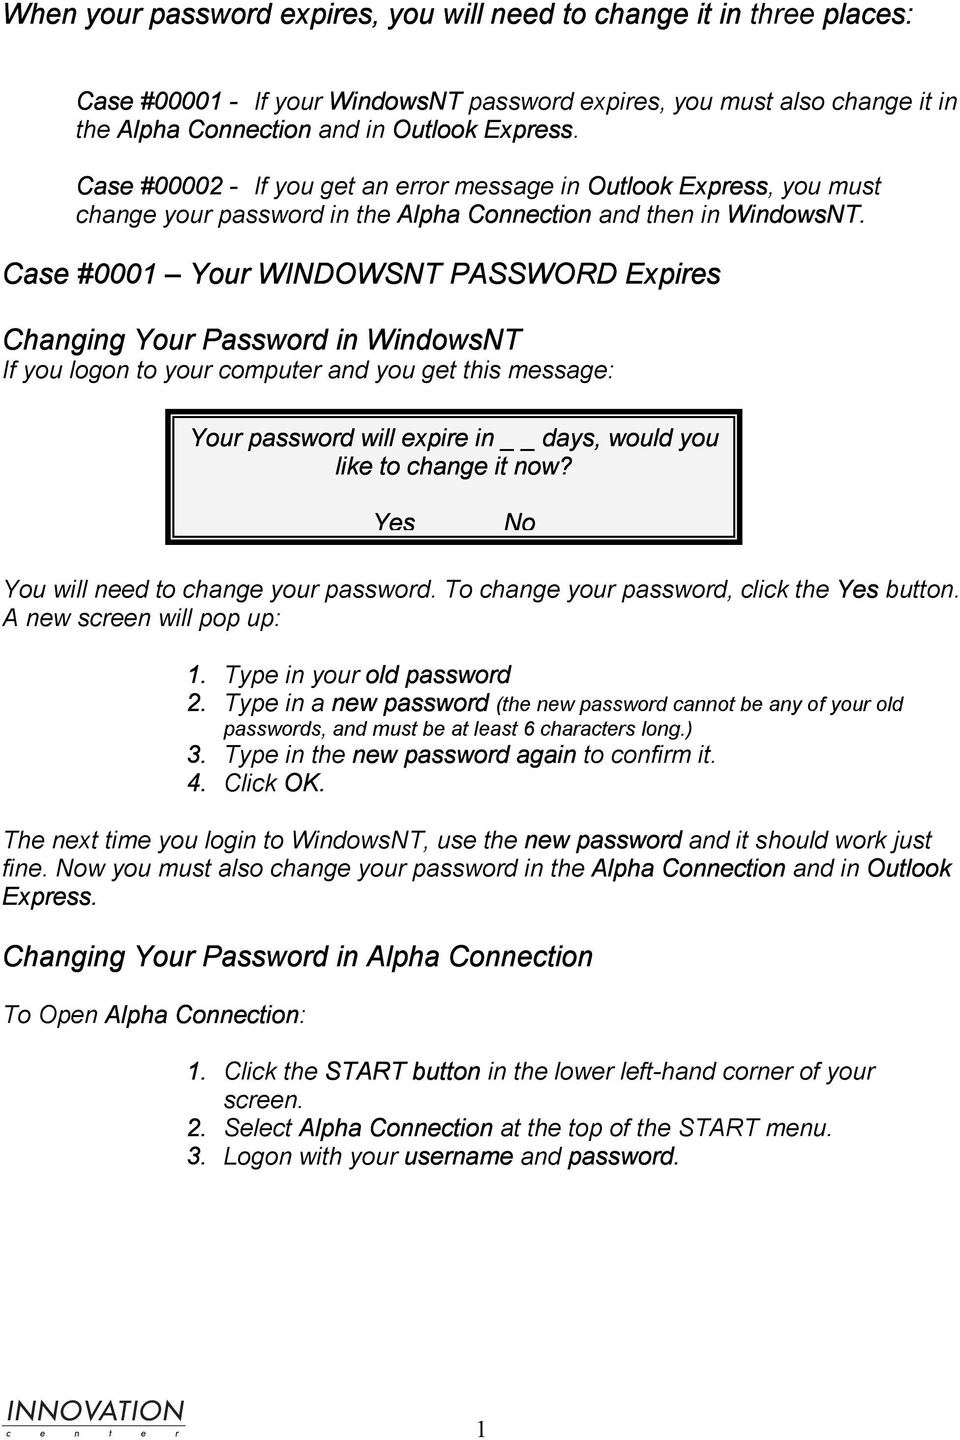 Case #0001 Your WINDOWSNT PASSWORD Expires Changing Your Password in WindowsNT If you logon to your computer and you get this message: Your password will expire in days, would you like to change it